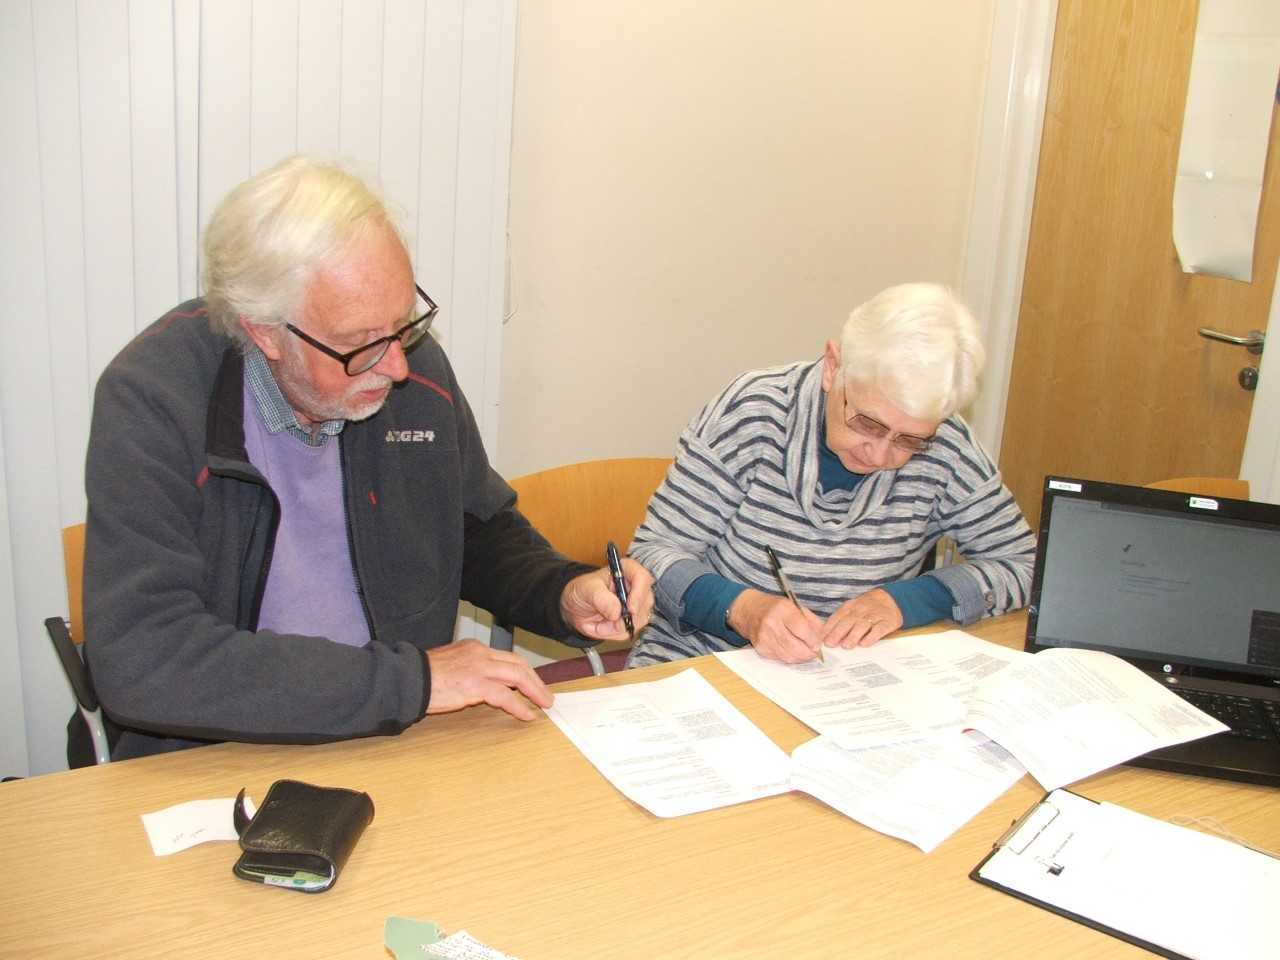 . The theatre's trustees Jill Edge and Brian Jackson sign the CAT agreement.